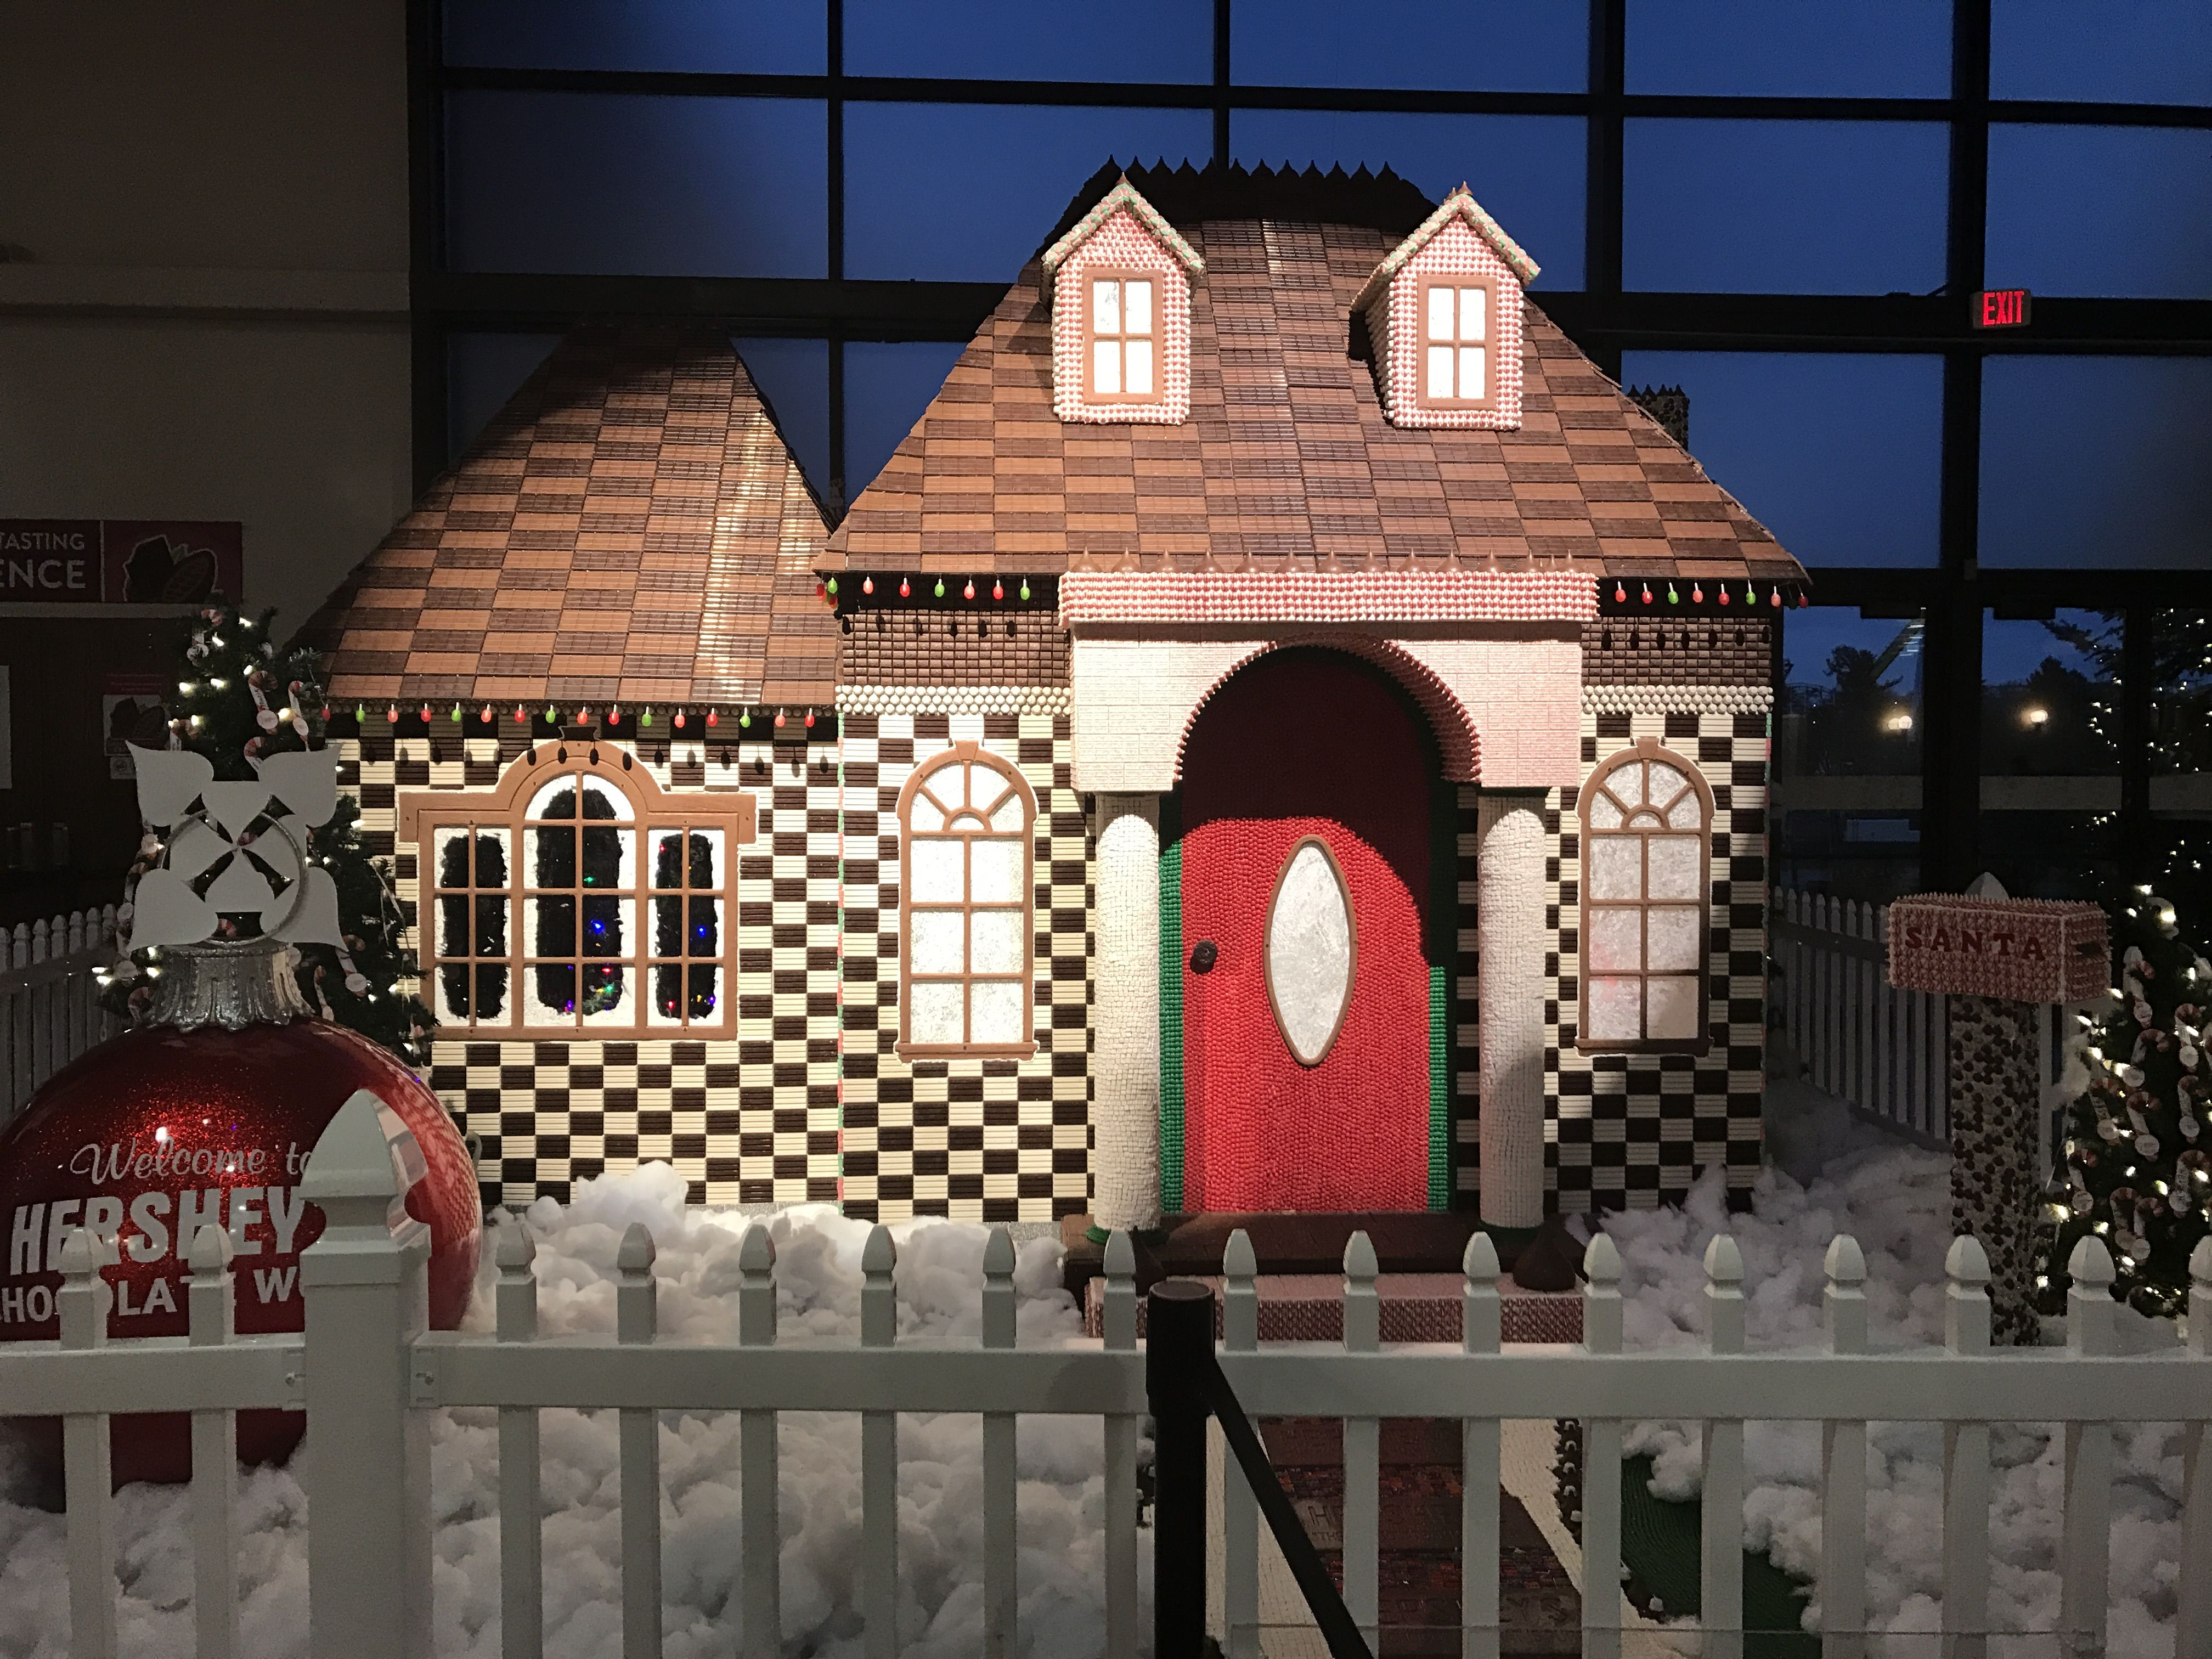 Just saw this really cool gingerbread house at Hershey's Chocolate world!!!! It was made with about 1 ton of Hershey's brand candy and took at least 2-3 days to make!!!!!!!!!!                   #ToCrazy